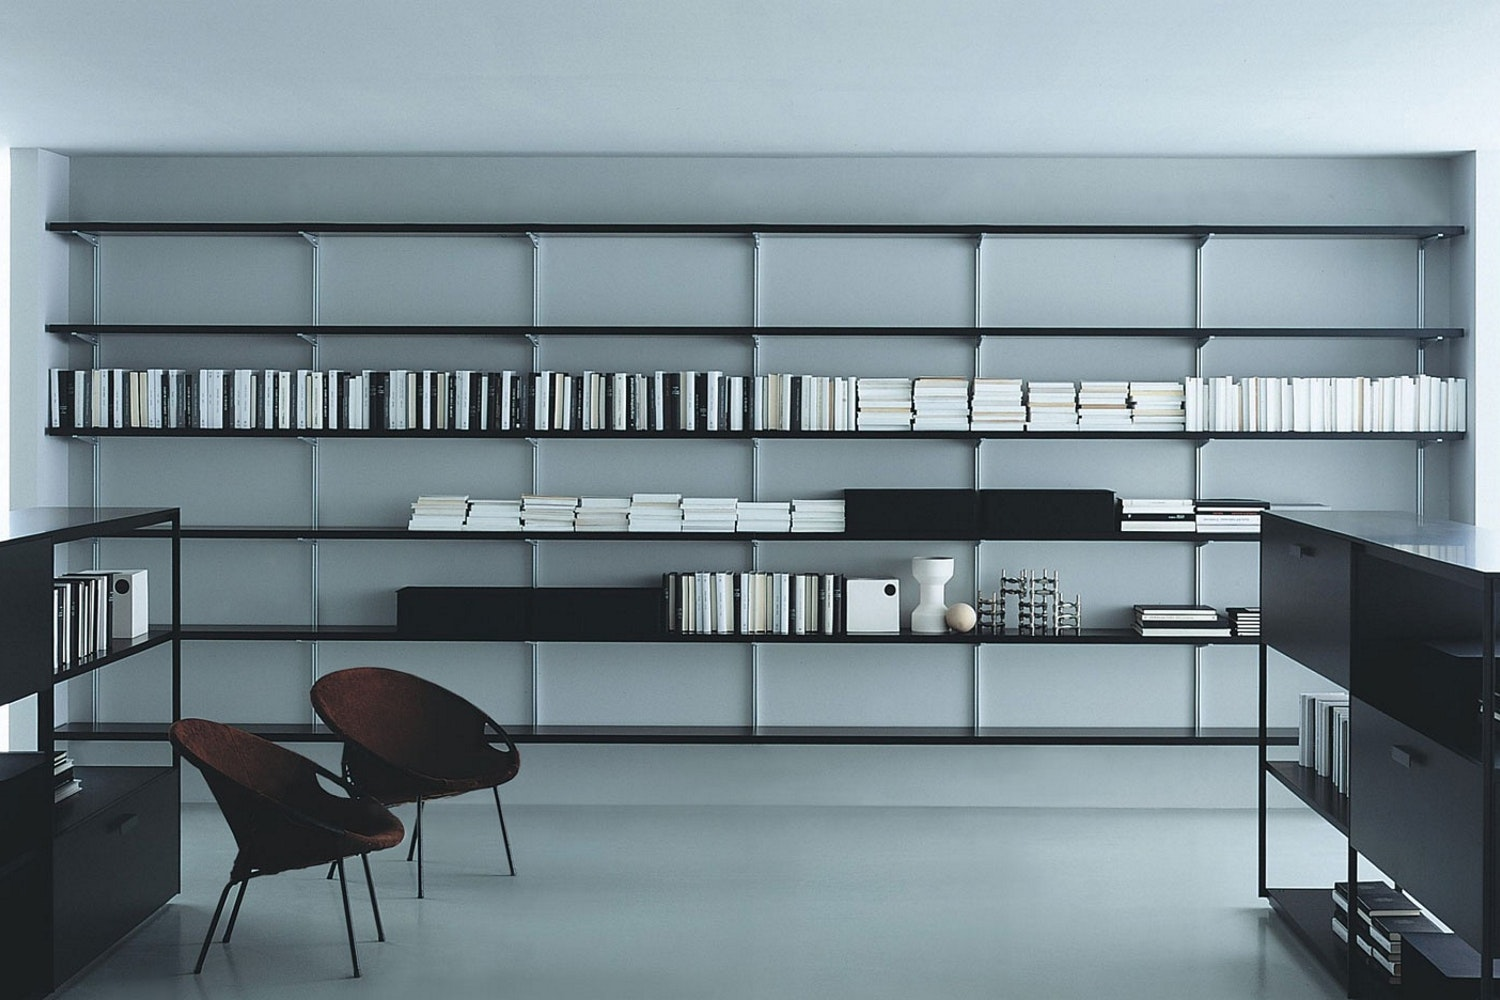 Newtone Wall Mounted Storage by Piero Lissoni for Porro